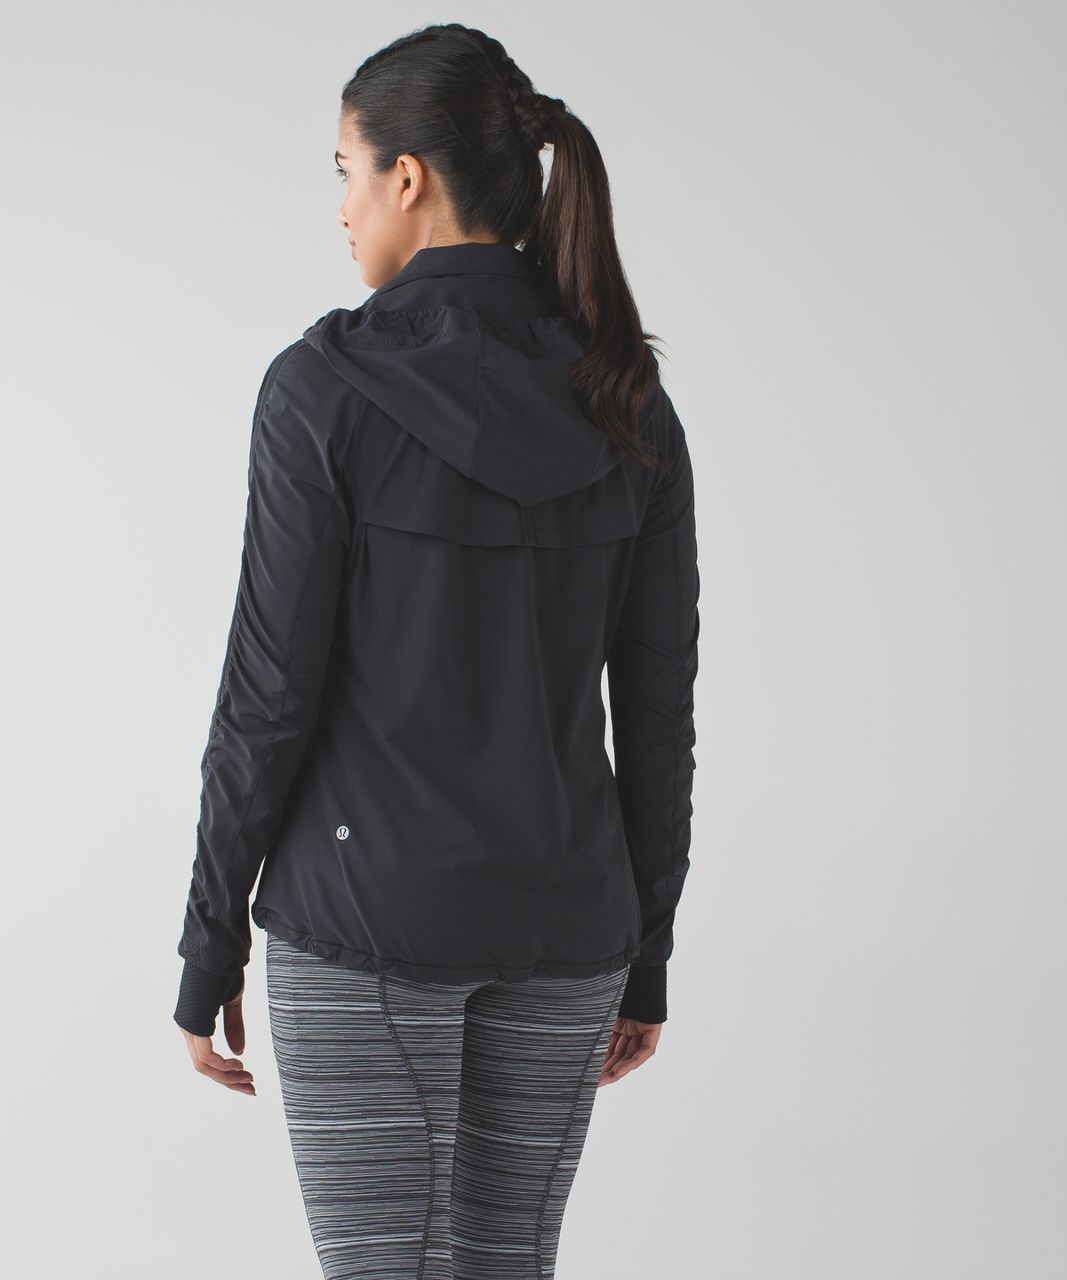 Lululemon Gather Me Slightly Jacket - Black